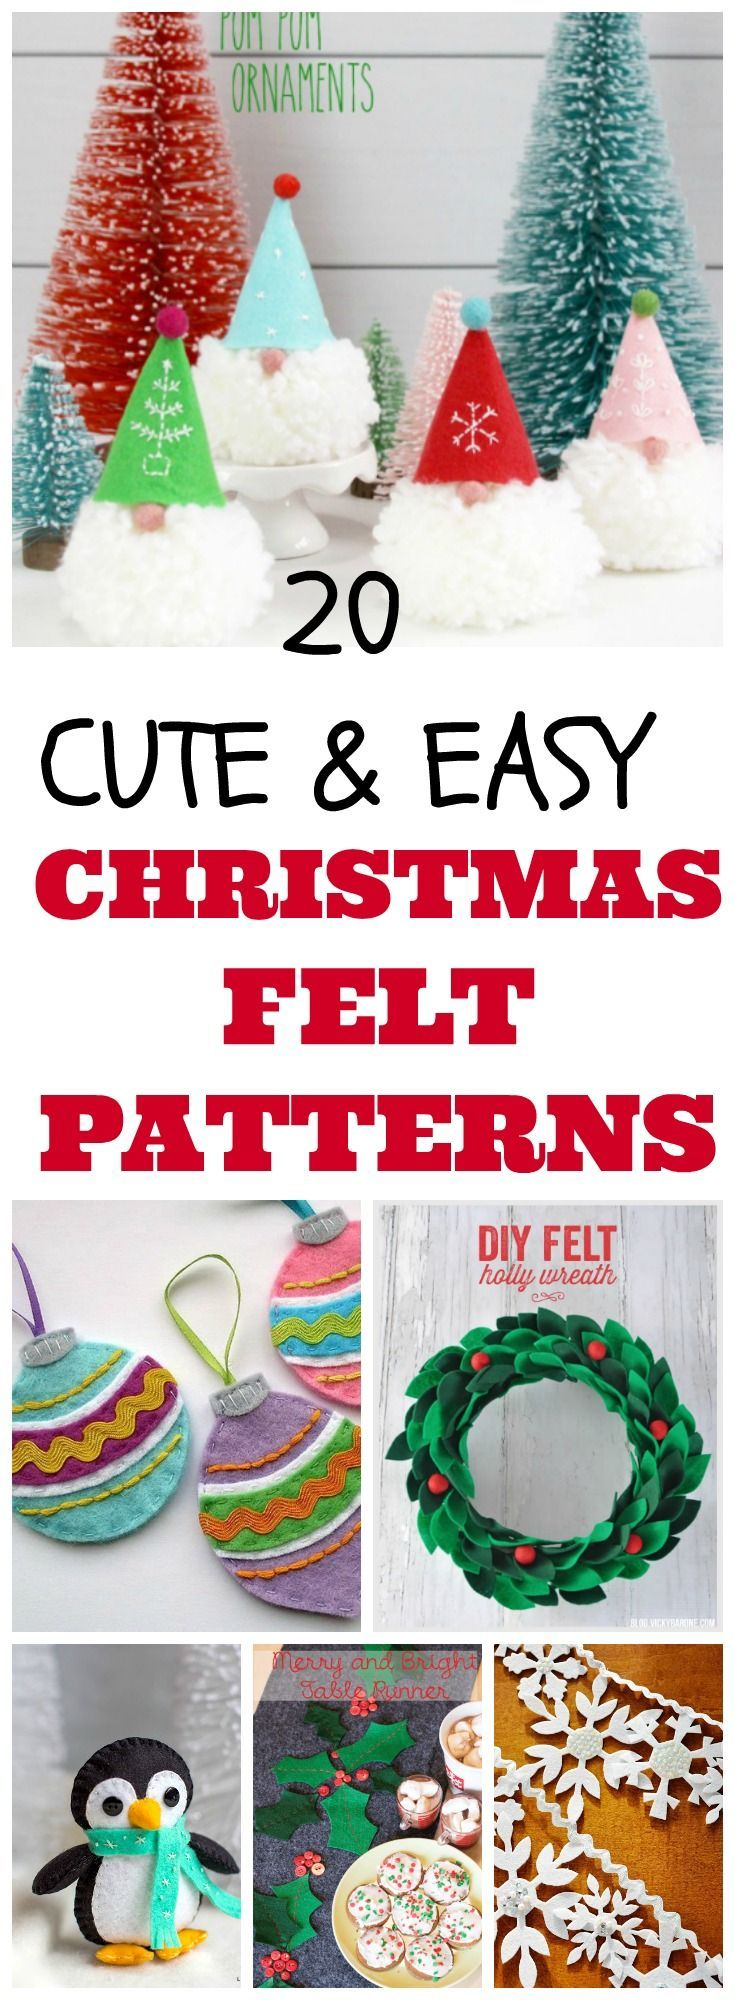 20 DIY christmas felt patterns for holiday crafts, christmas gift ideas and winter decor.